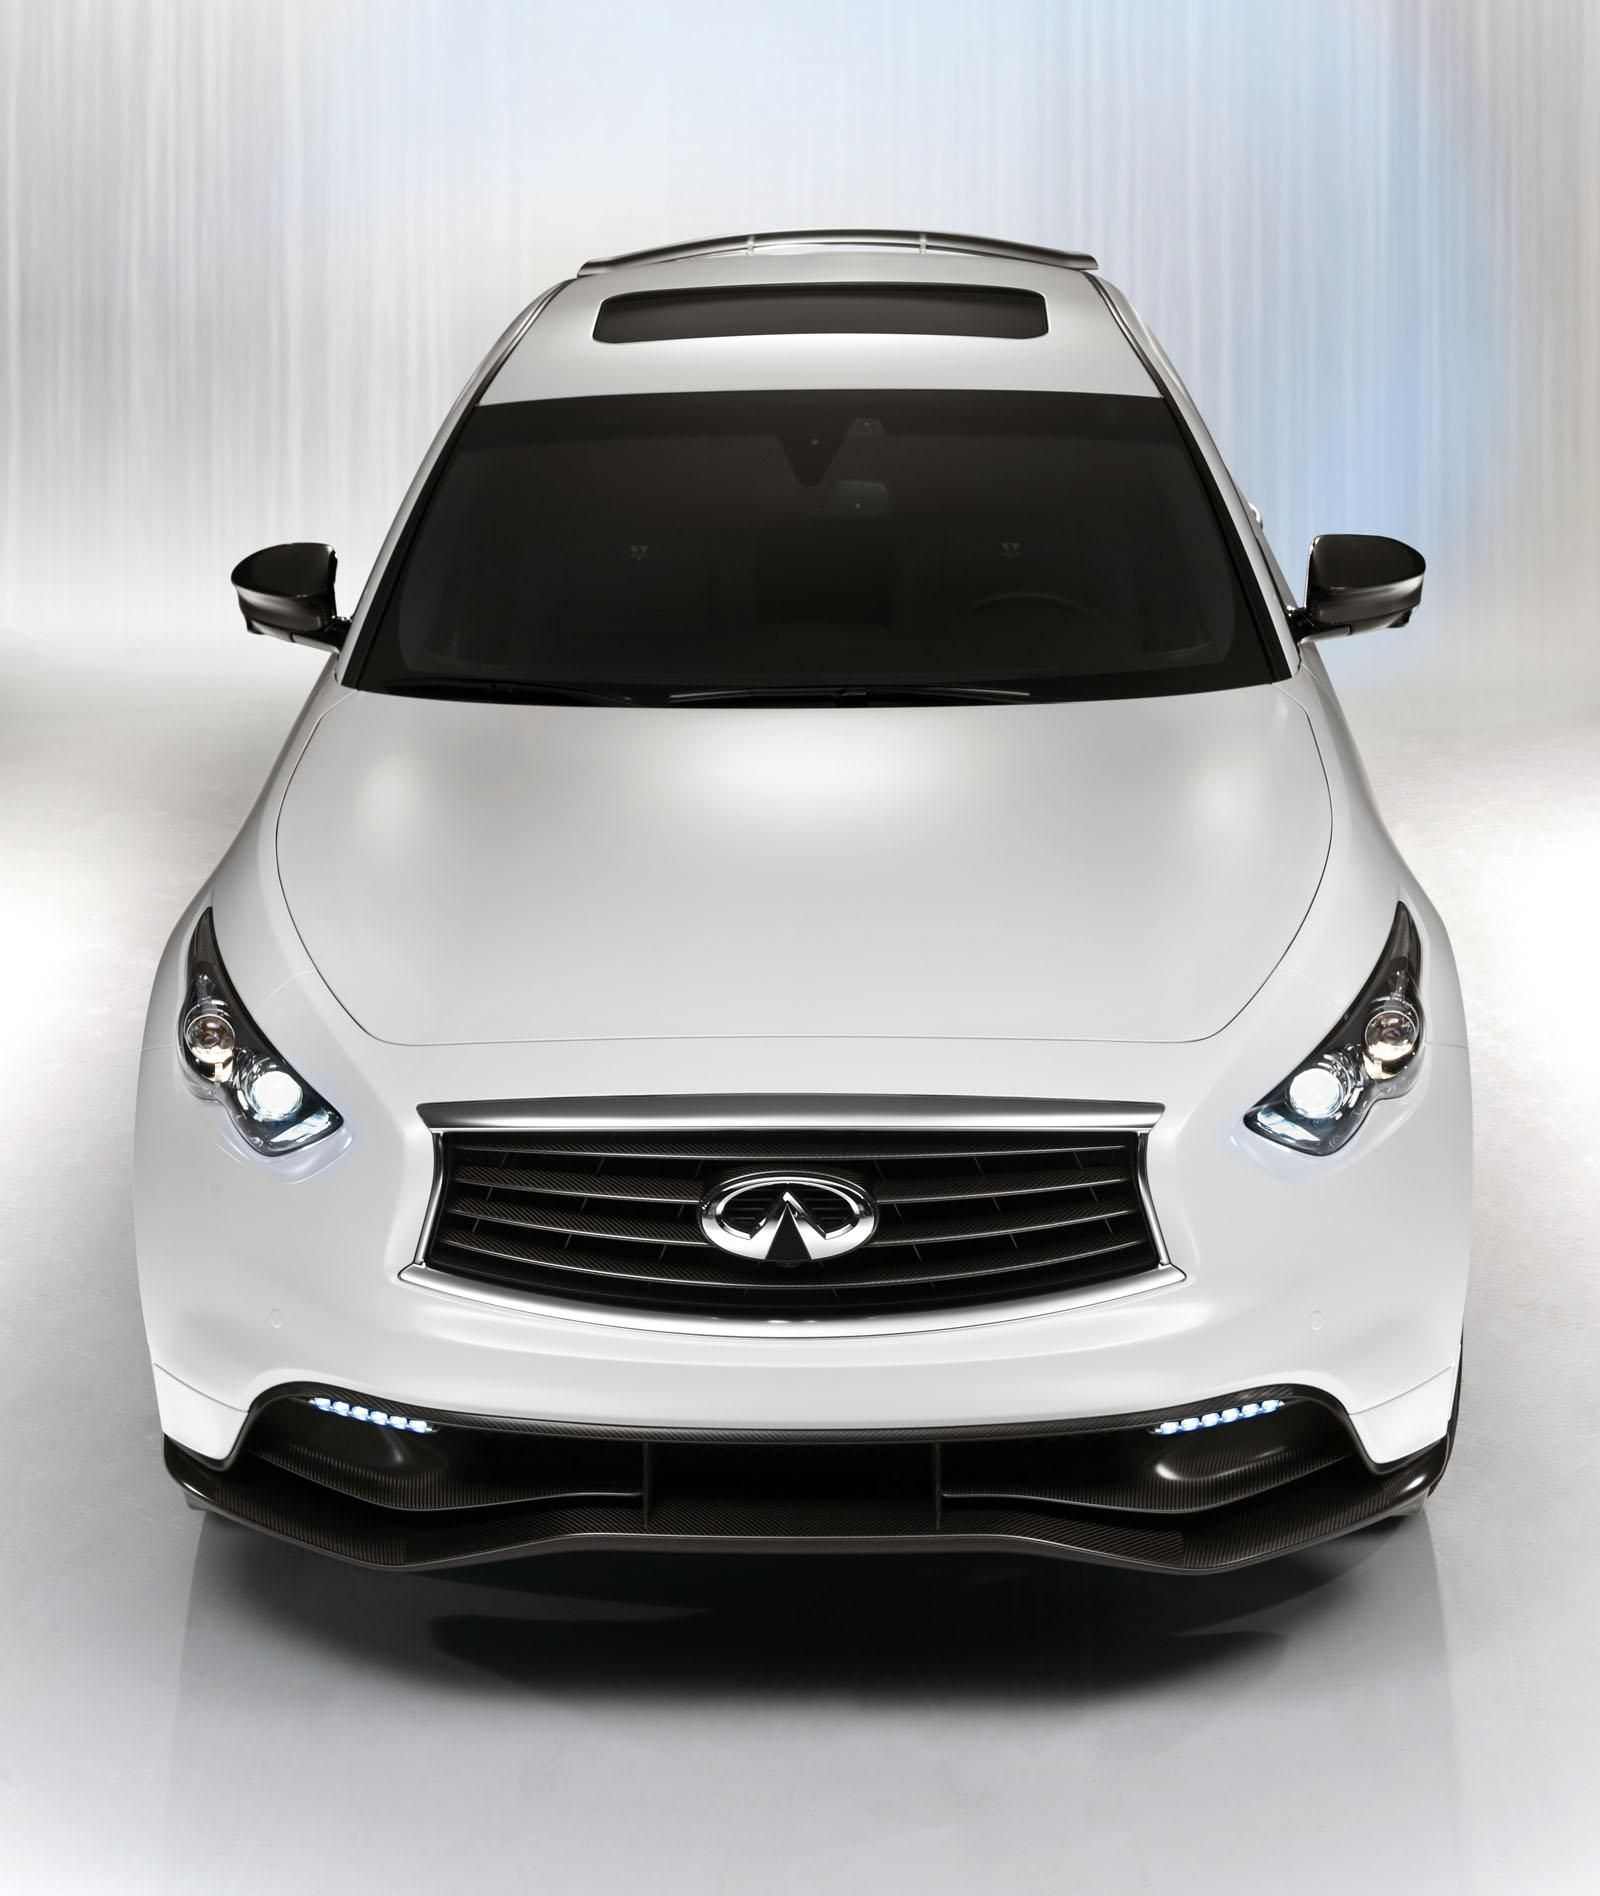 Infiniti 2020 infiniti essence concept my car and more infiniti 2020 infiniti essence concept my car and more pinterest cars q50 and dream cars vanachro Image collections